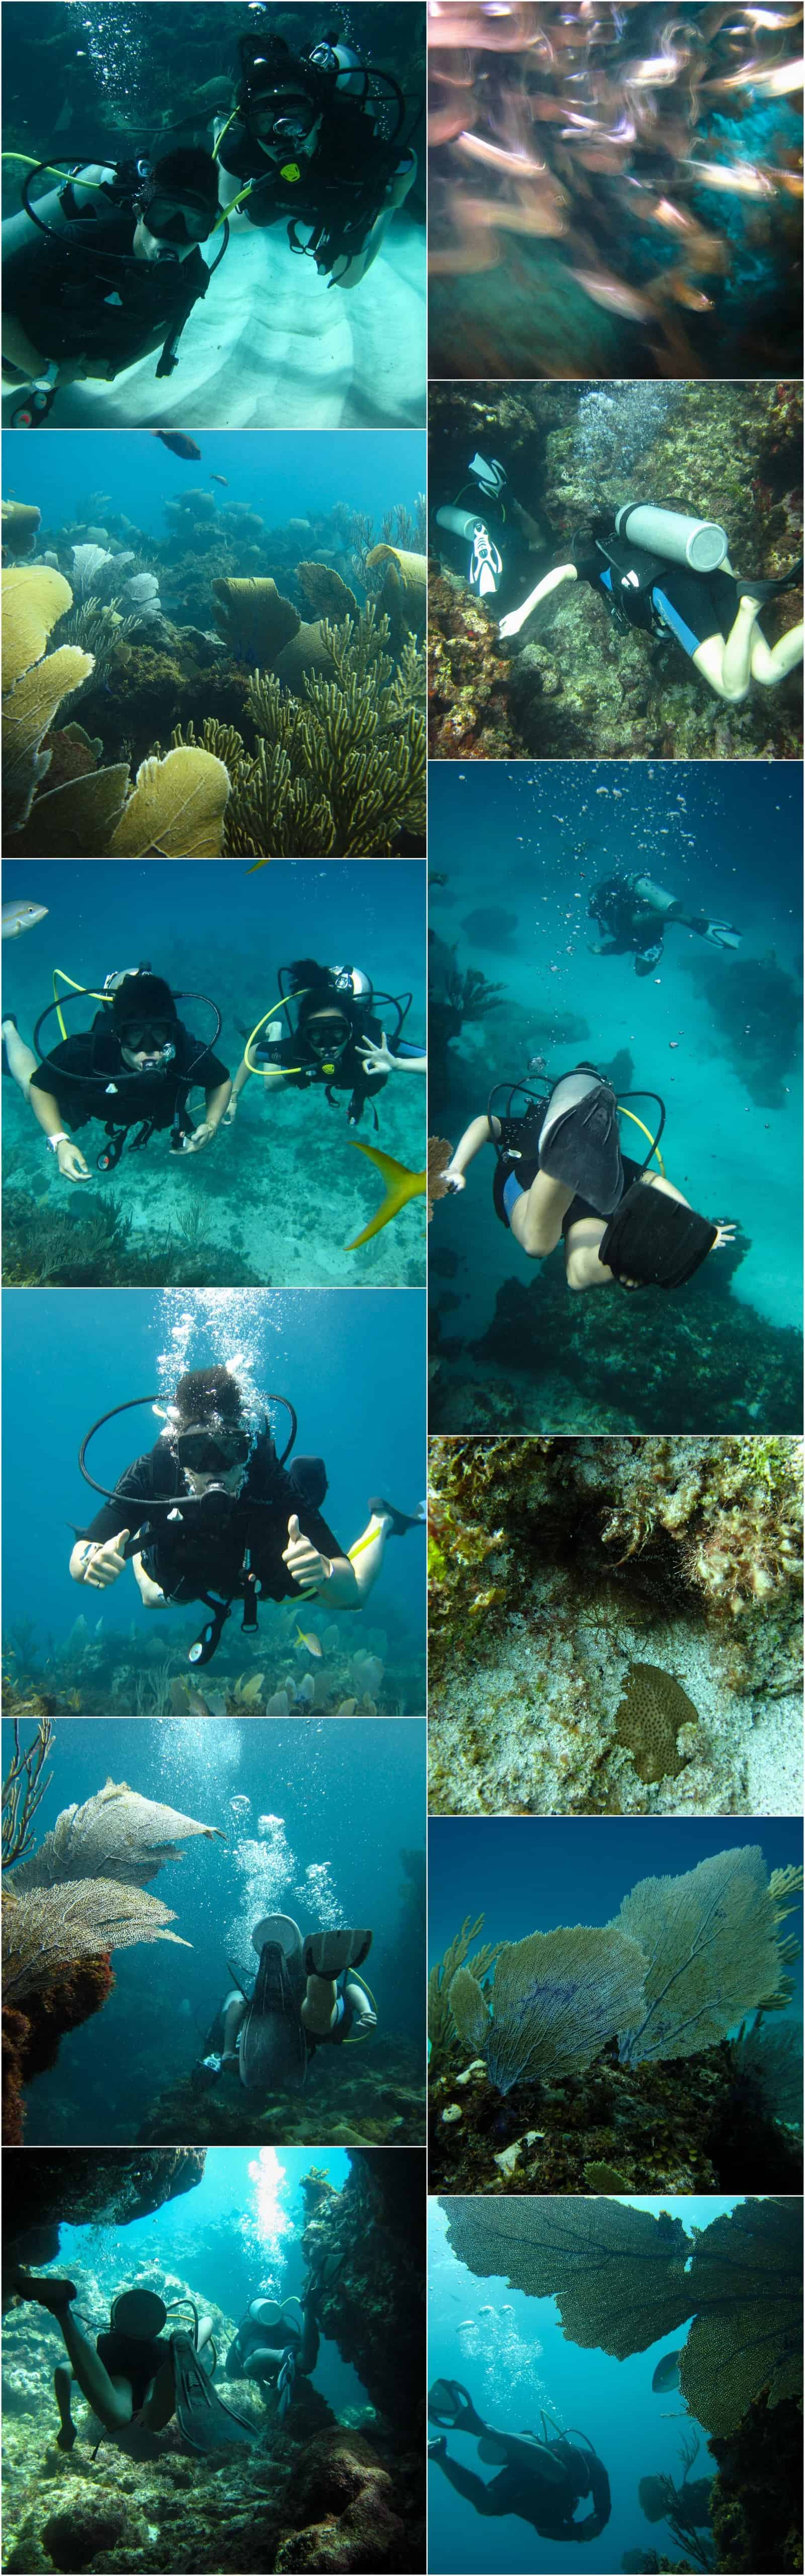 channel dive site with seapro divers mosaic of photos from the experience